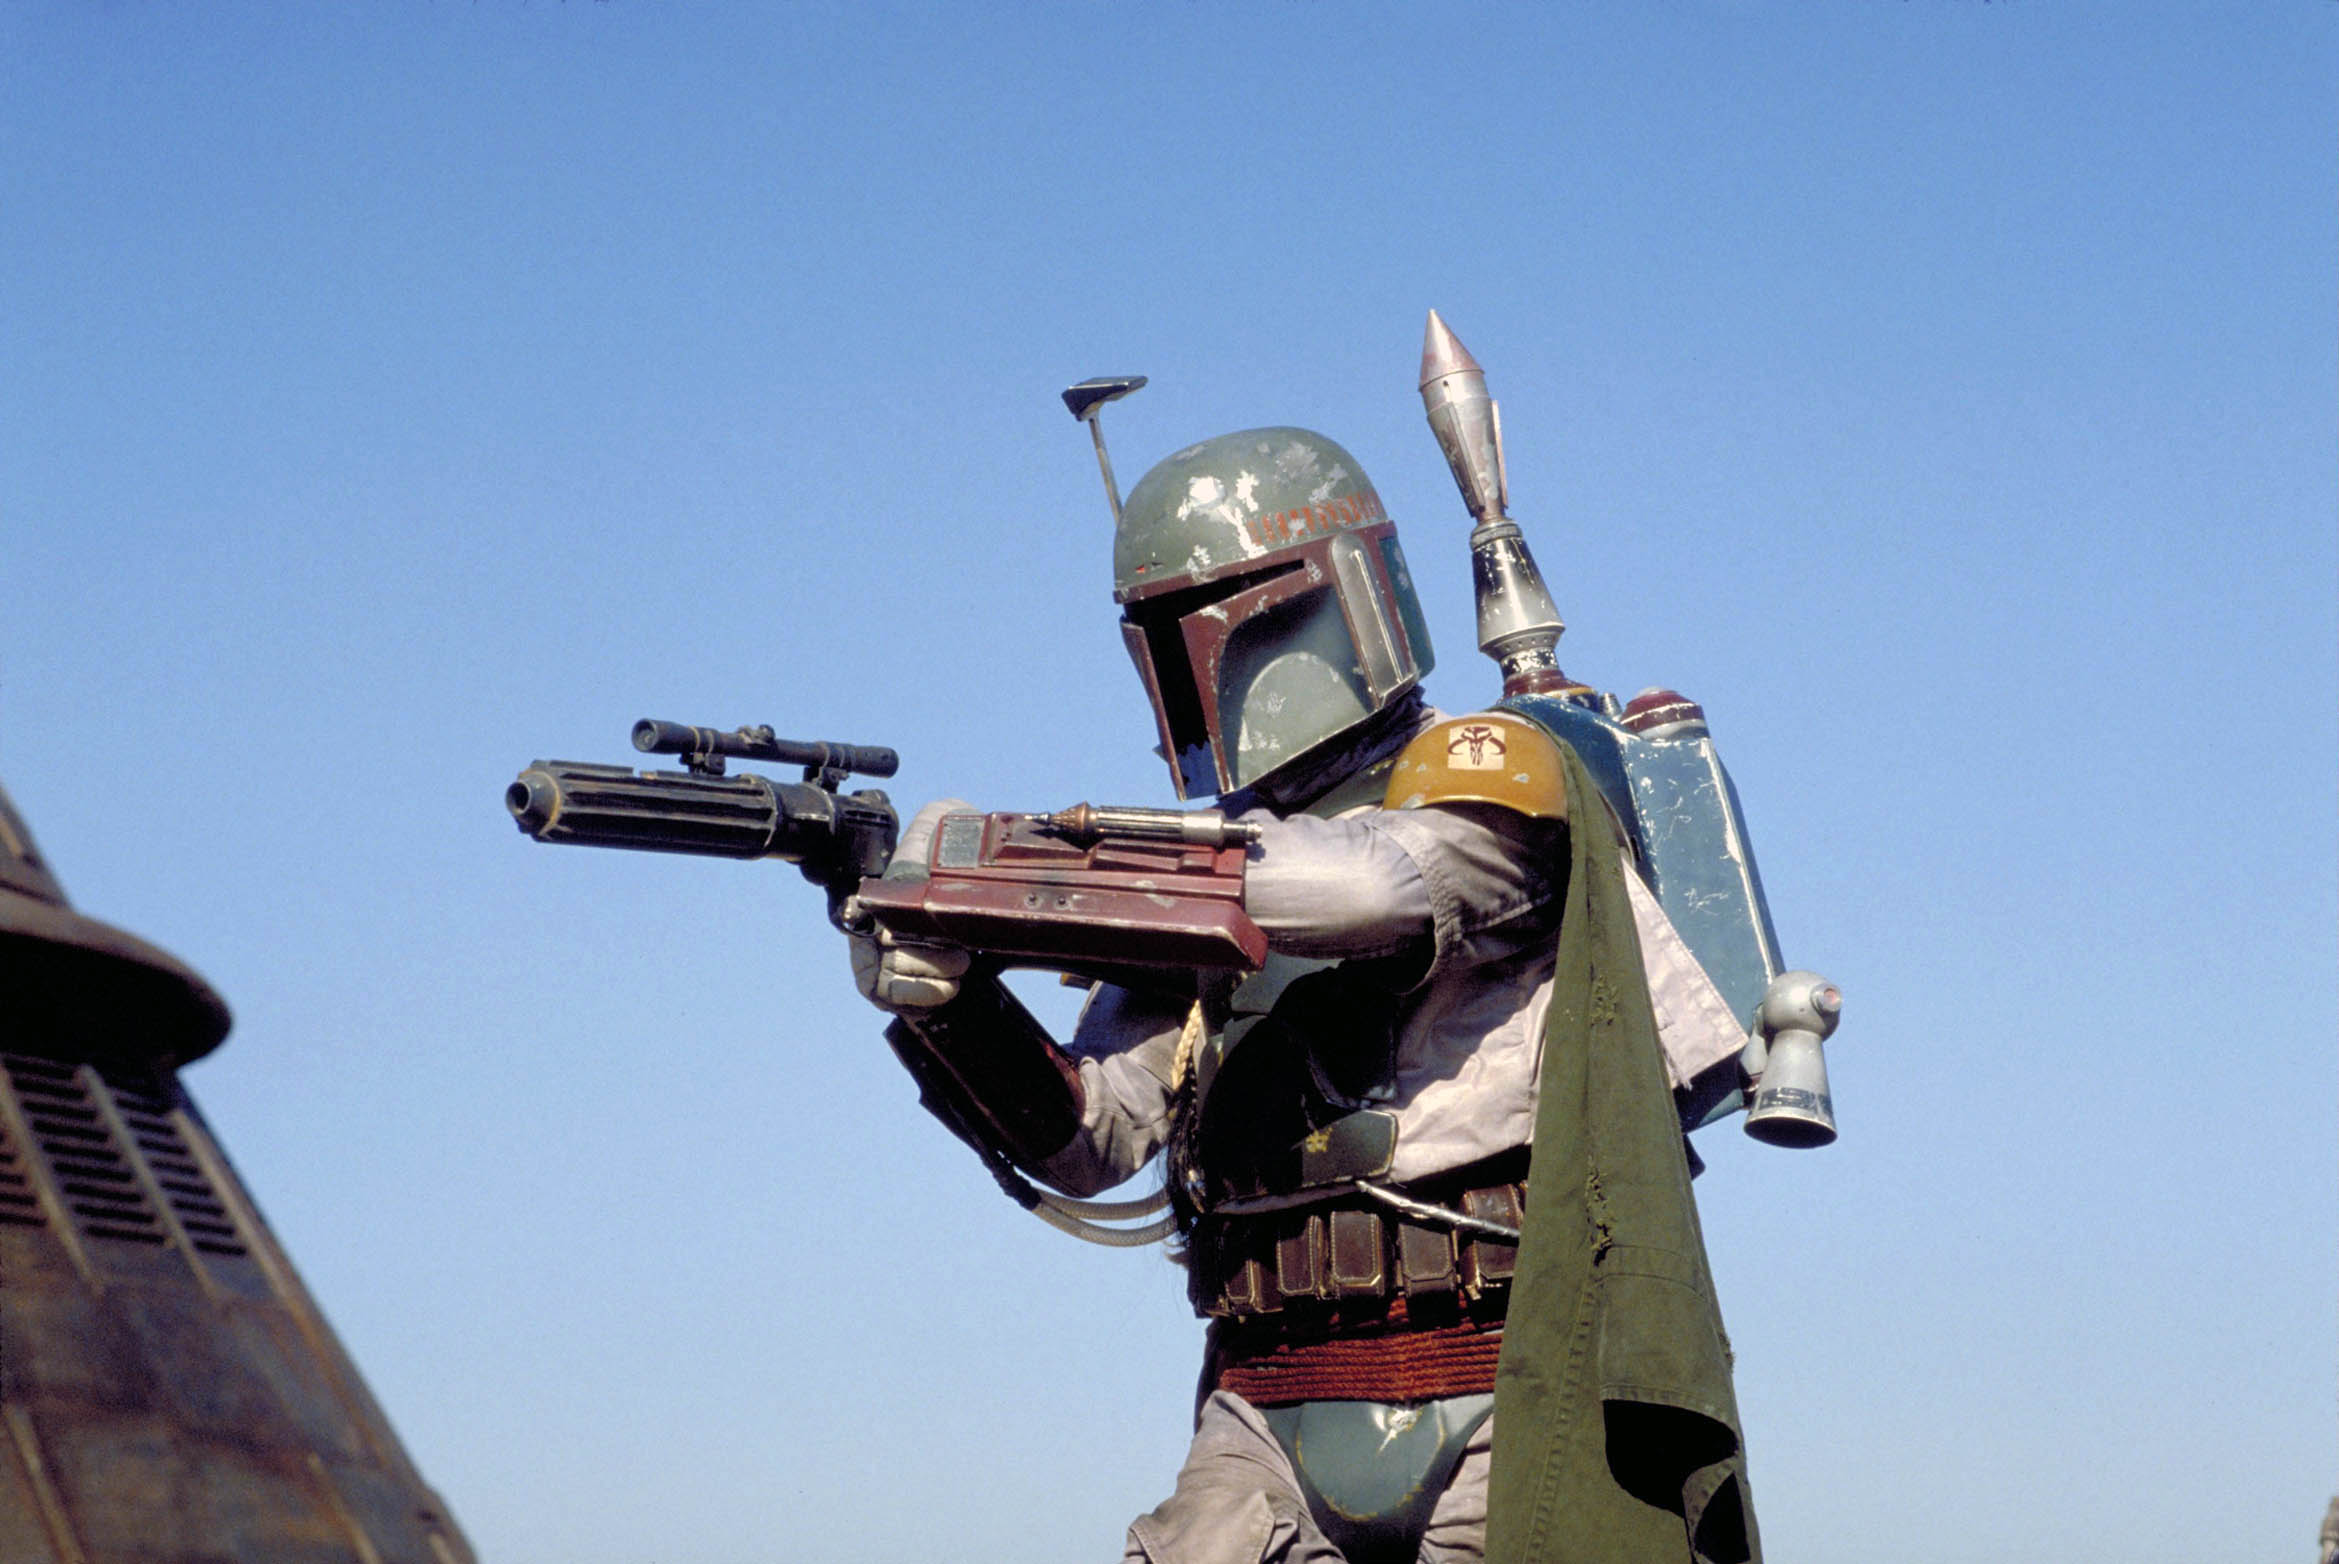 This sneak peak of The Mandalorian is a call back to the most infamous moment in Star Wars history